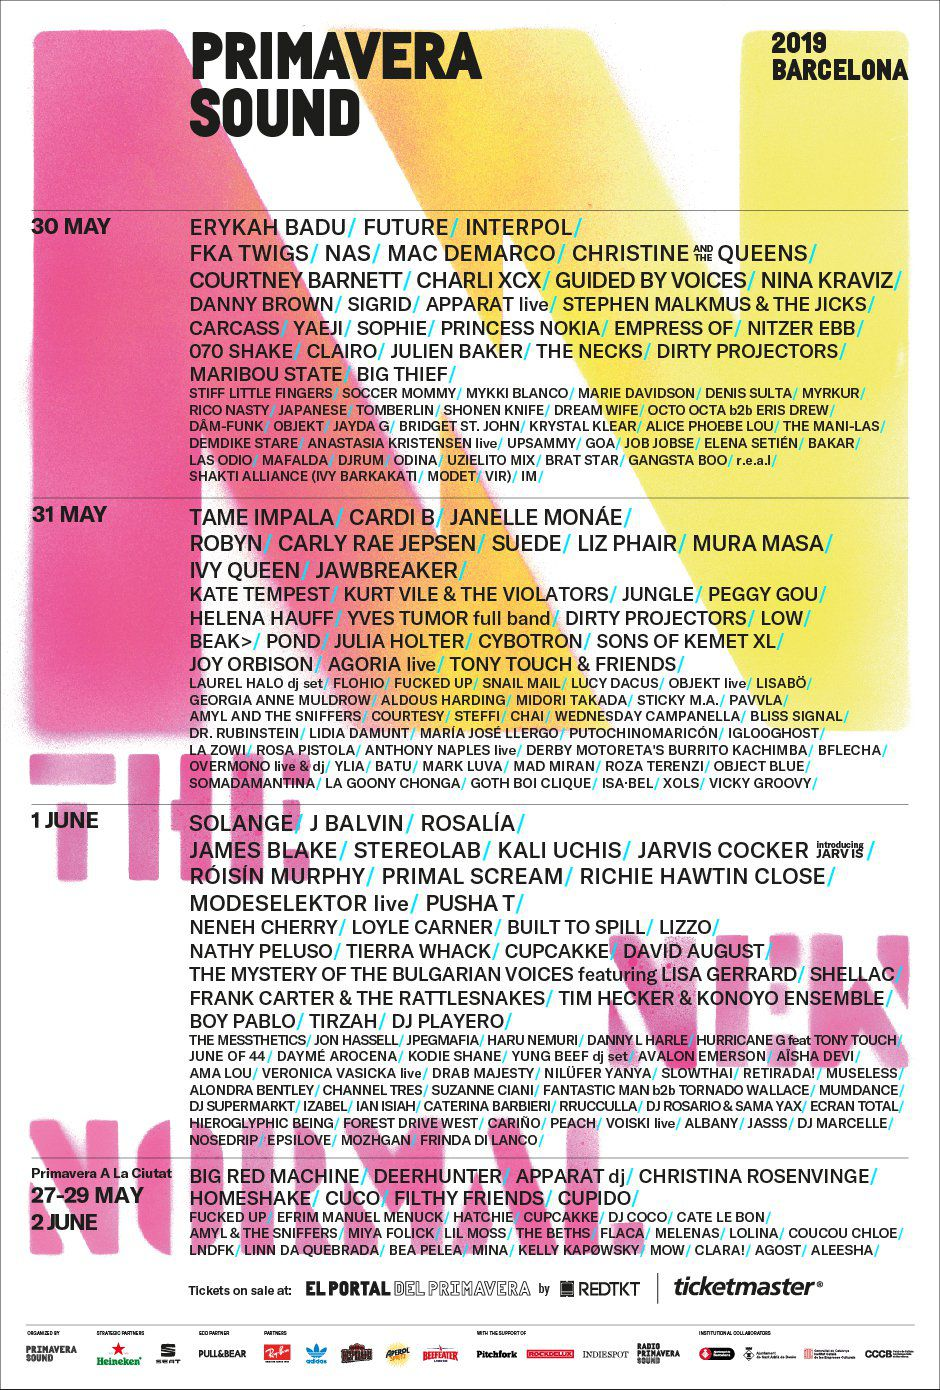 The lineup for the Primavera Sound 2019 festival.